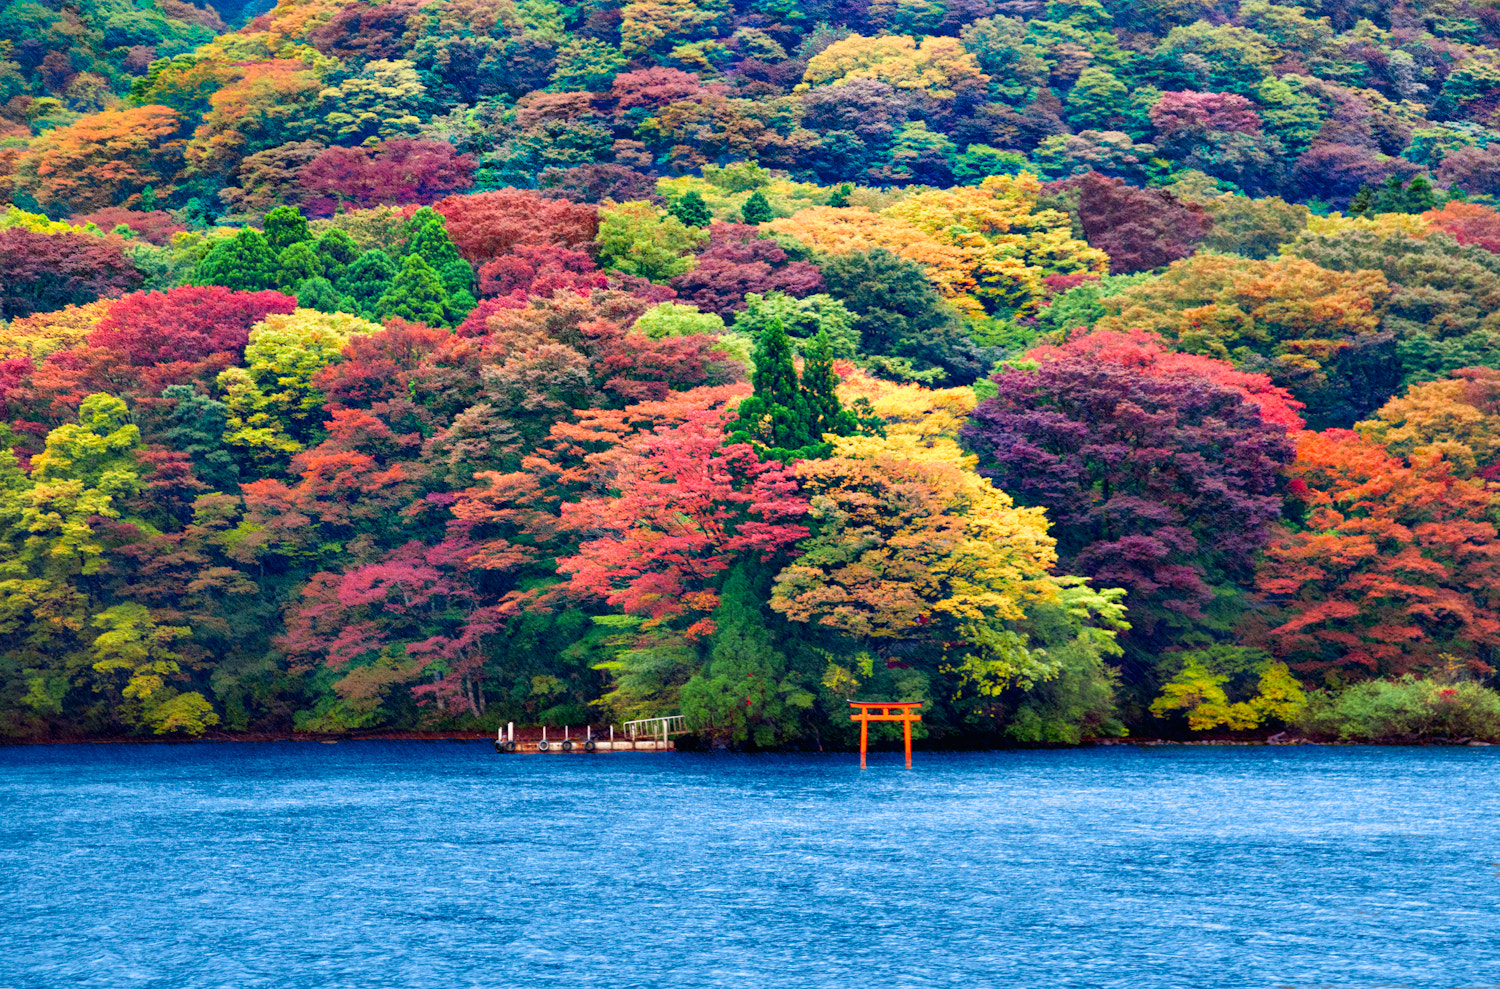 Photograph Ashi Lake, Japan by Ricardo Bevilaqua on 500px